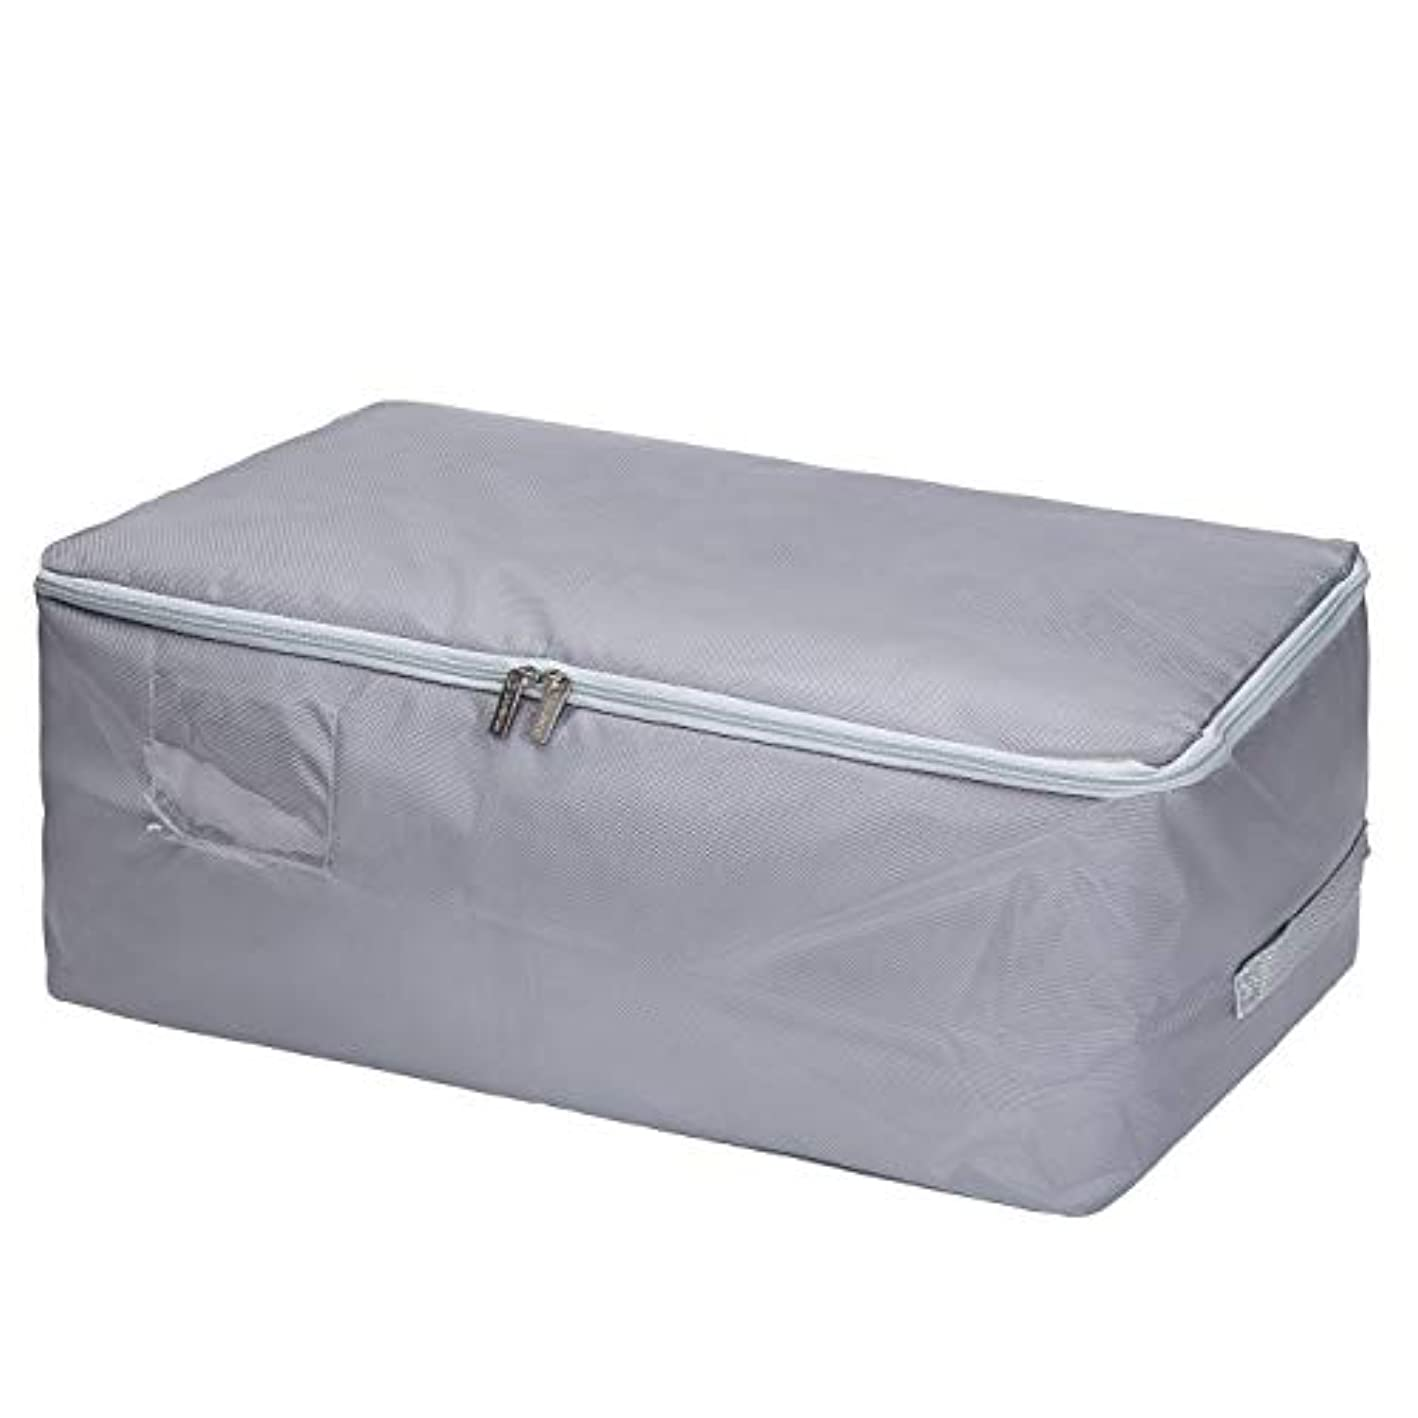 DOKEHOM DKA1014GYL2 Large Under Bed Storage Bag (5 Colors, L and XXL), Thick Ultra Size Fabric Clothes Bag, Moisture Proof (Grey, L)